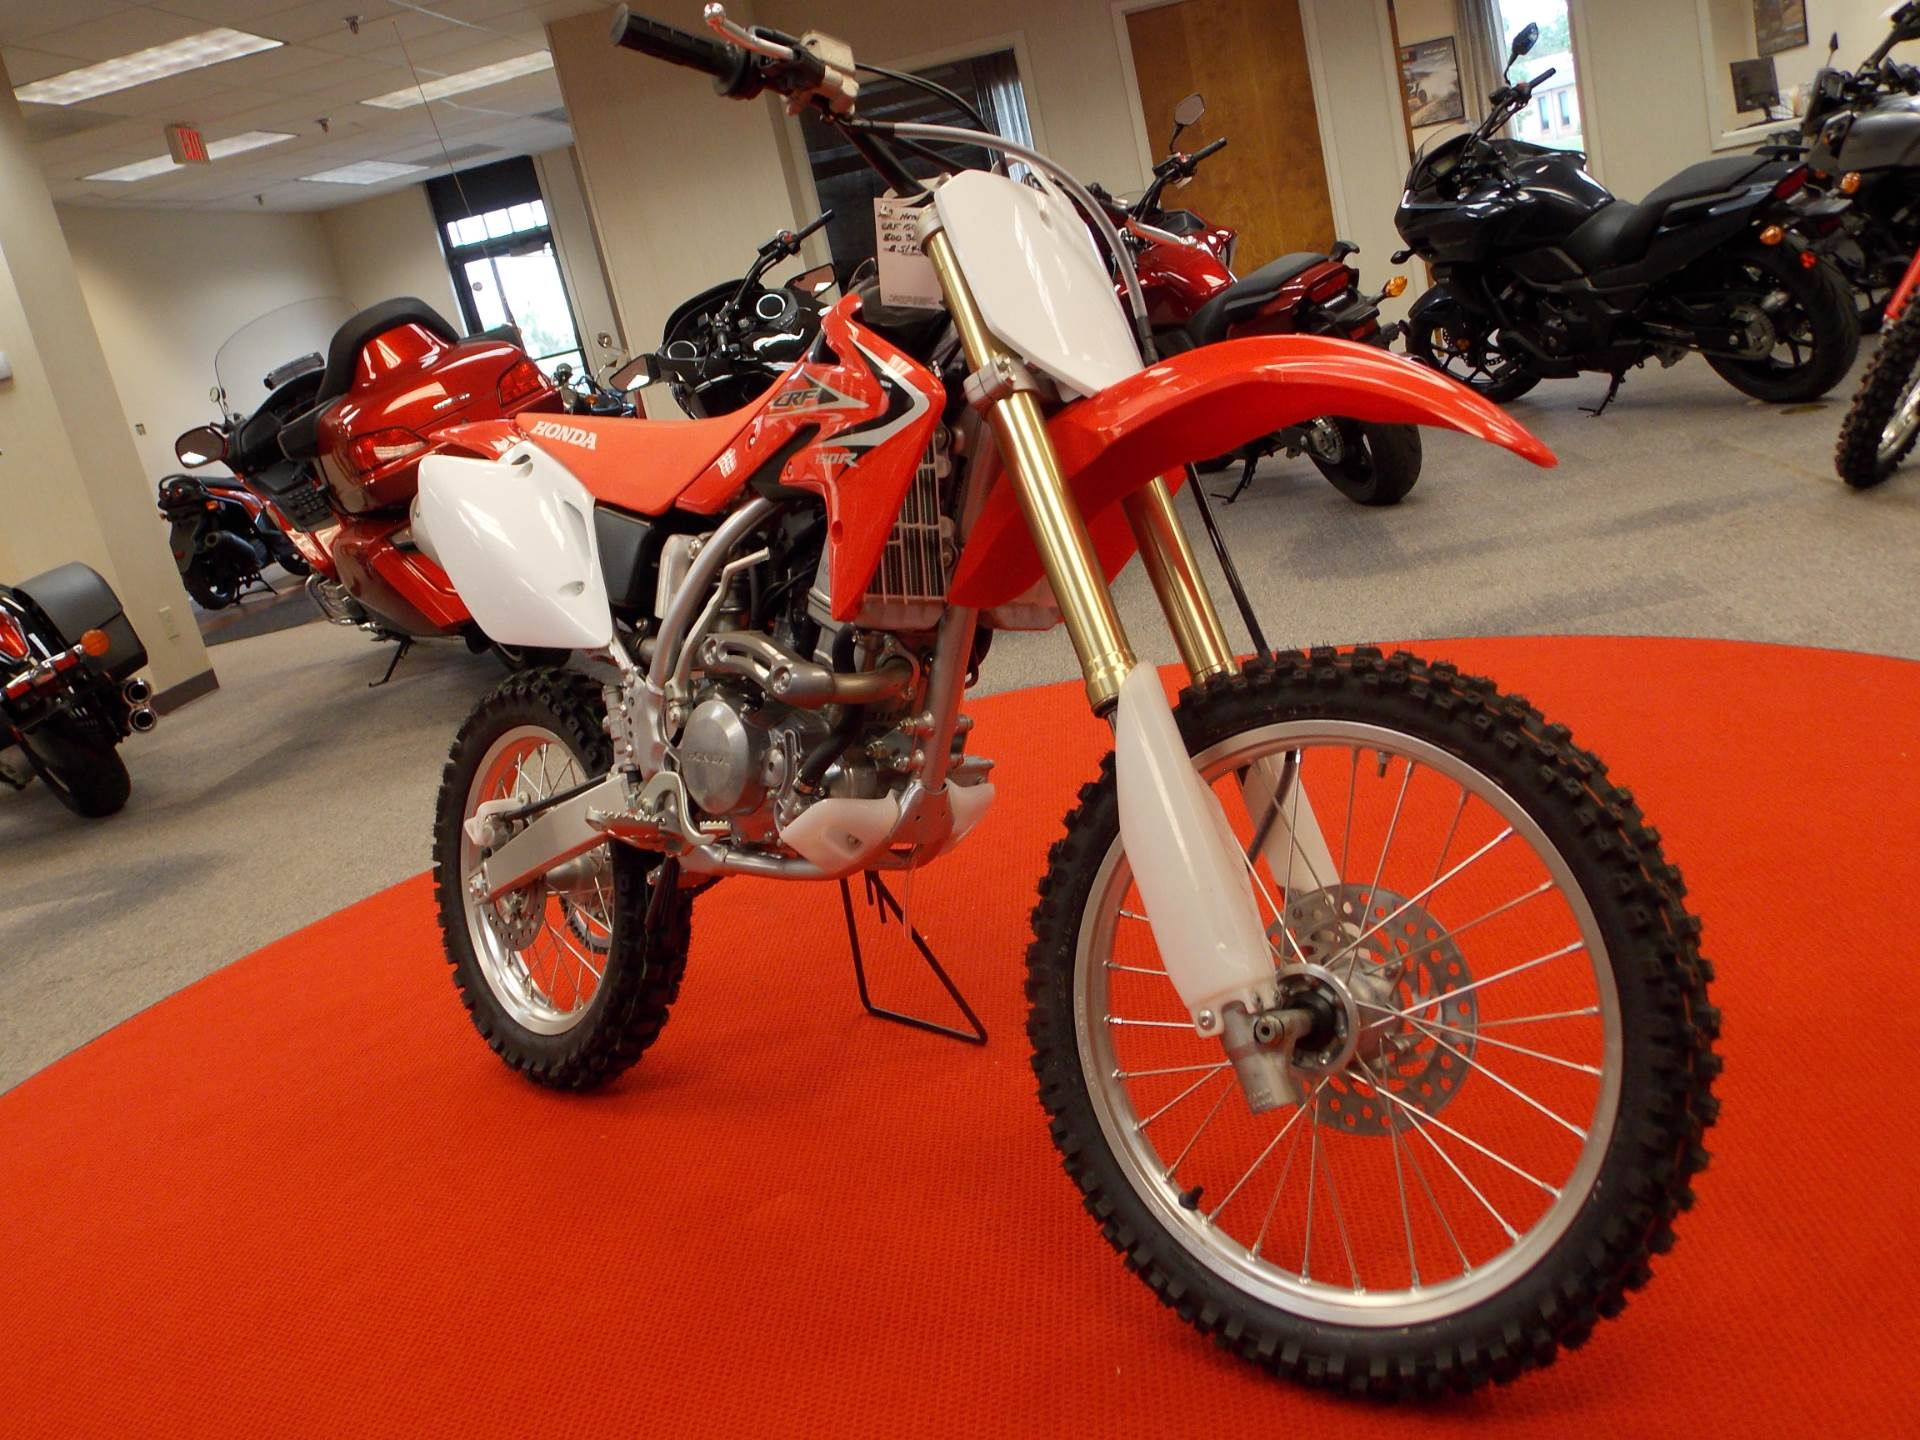 new 2017 honda crf150r motorcycles in statesville, nc | stock